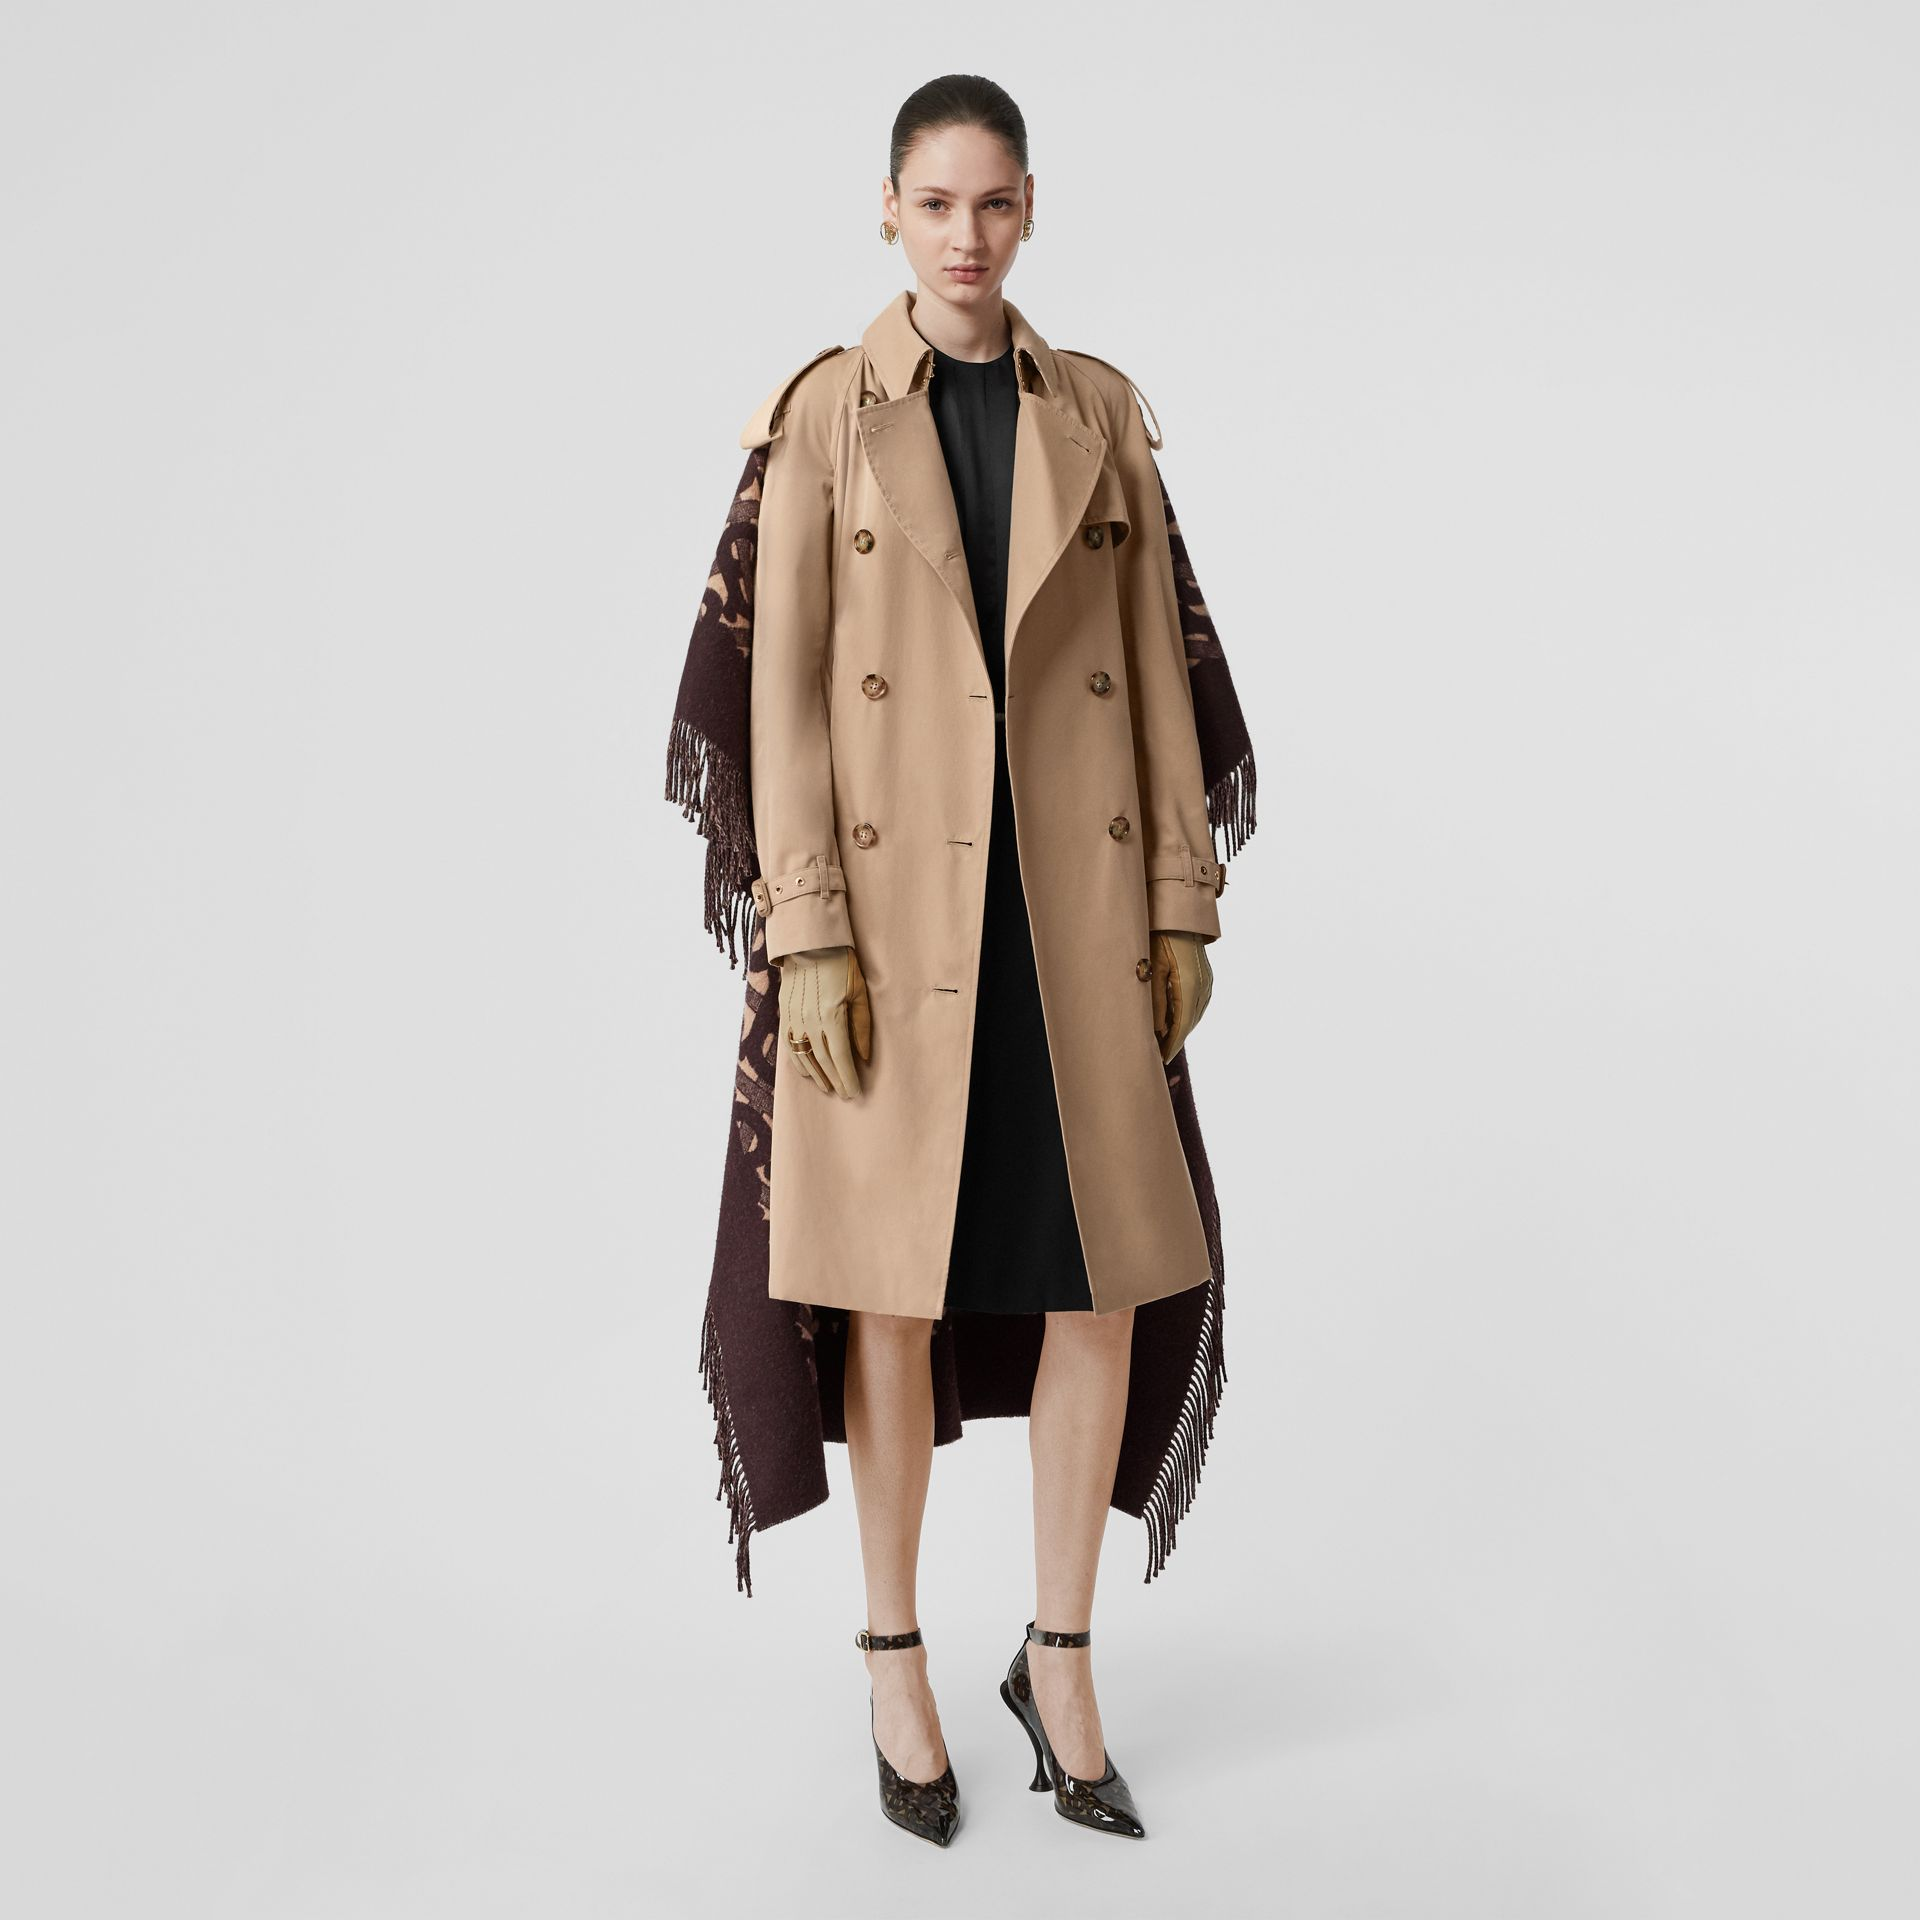 Blanket Detail Cotton Gabardine Trench Coat in Honey - Women | Burberry United States - gallery image 7